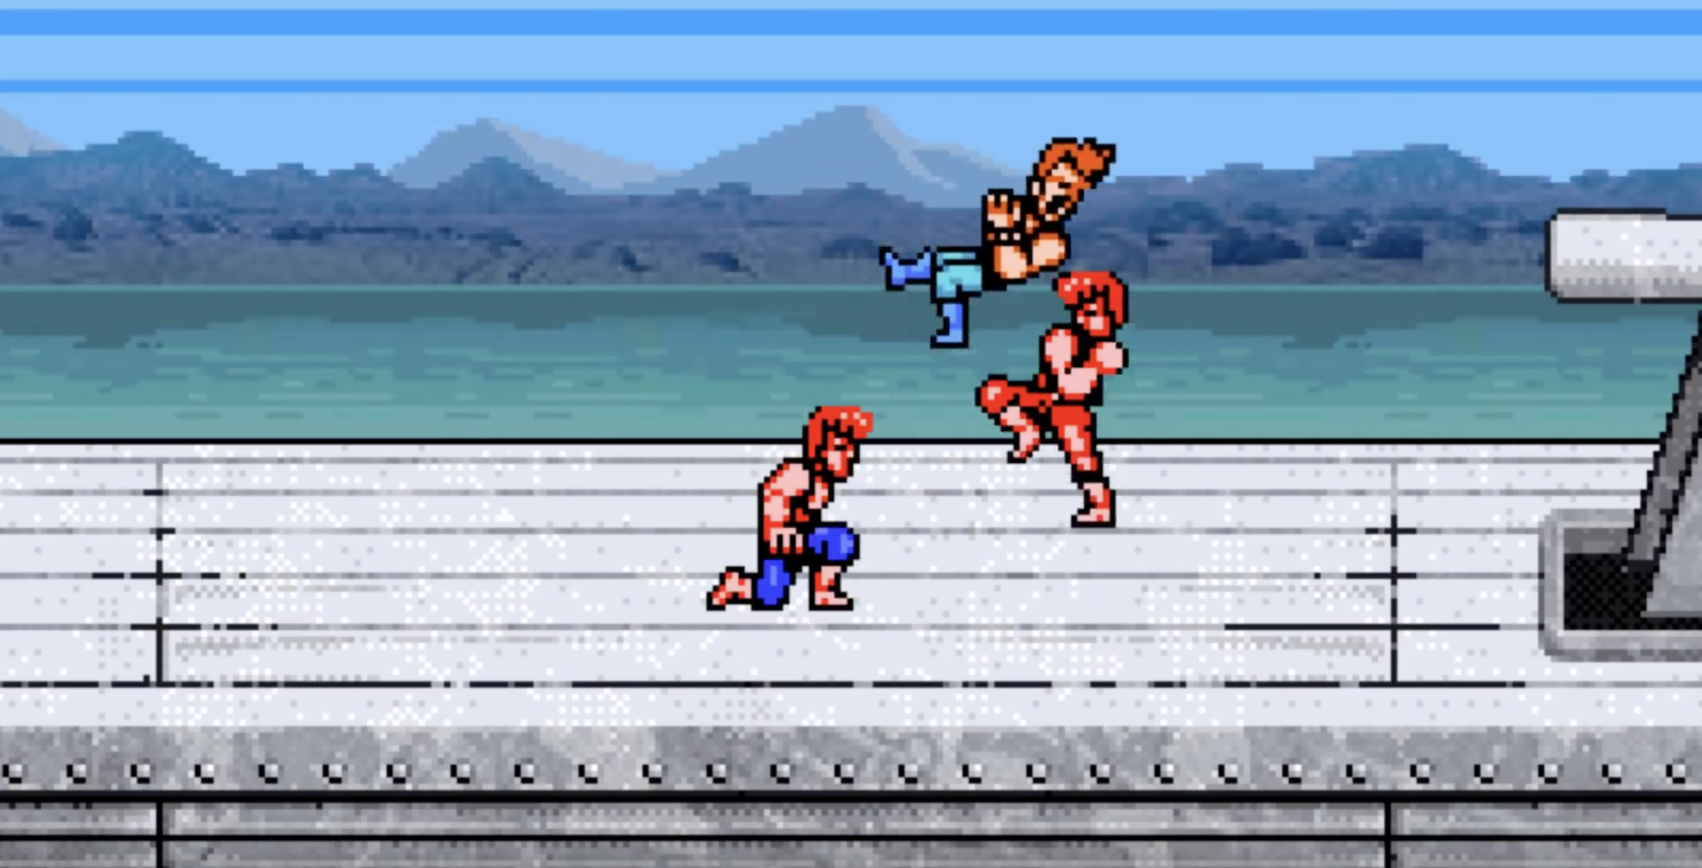 There is nothing better than teaming up with a friend to beat up a bad guy.